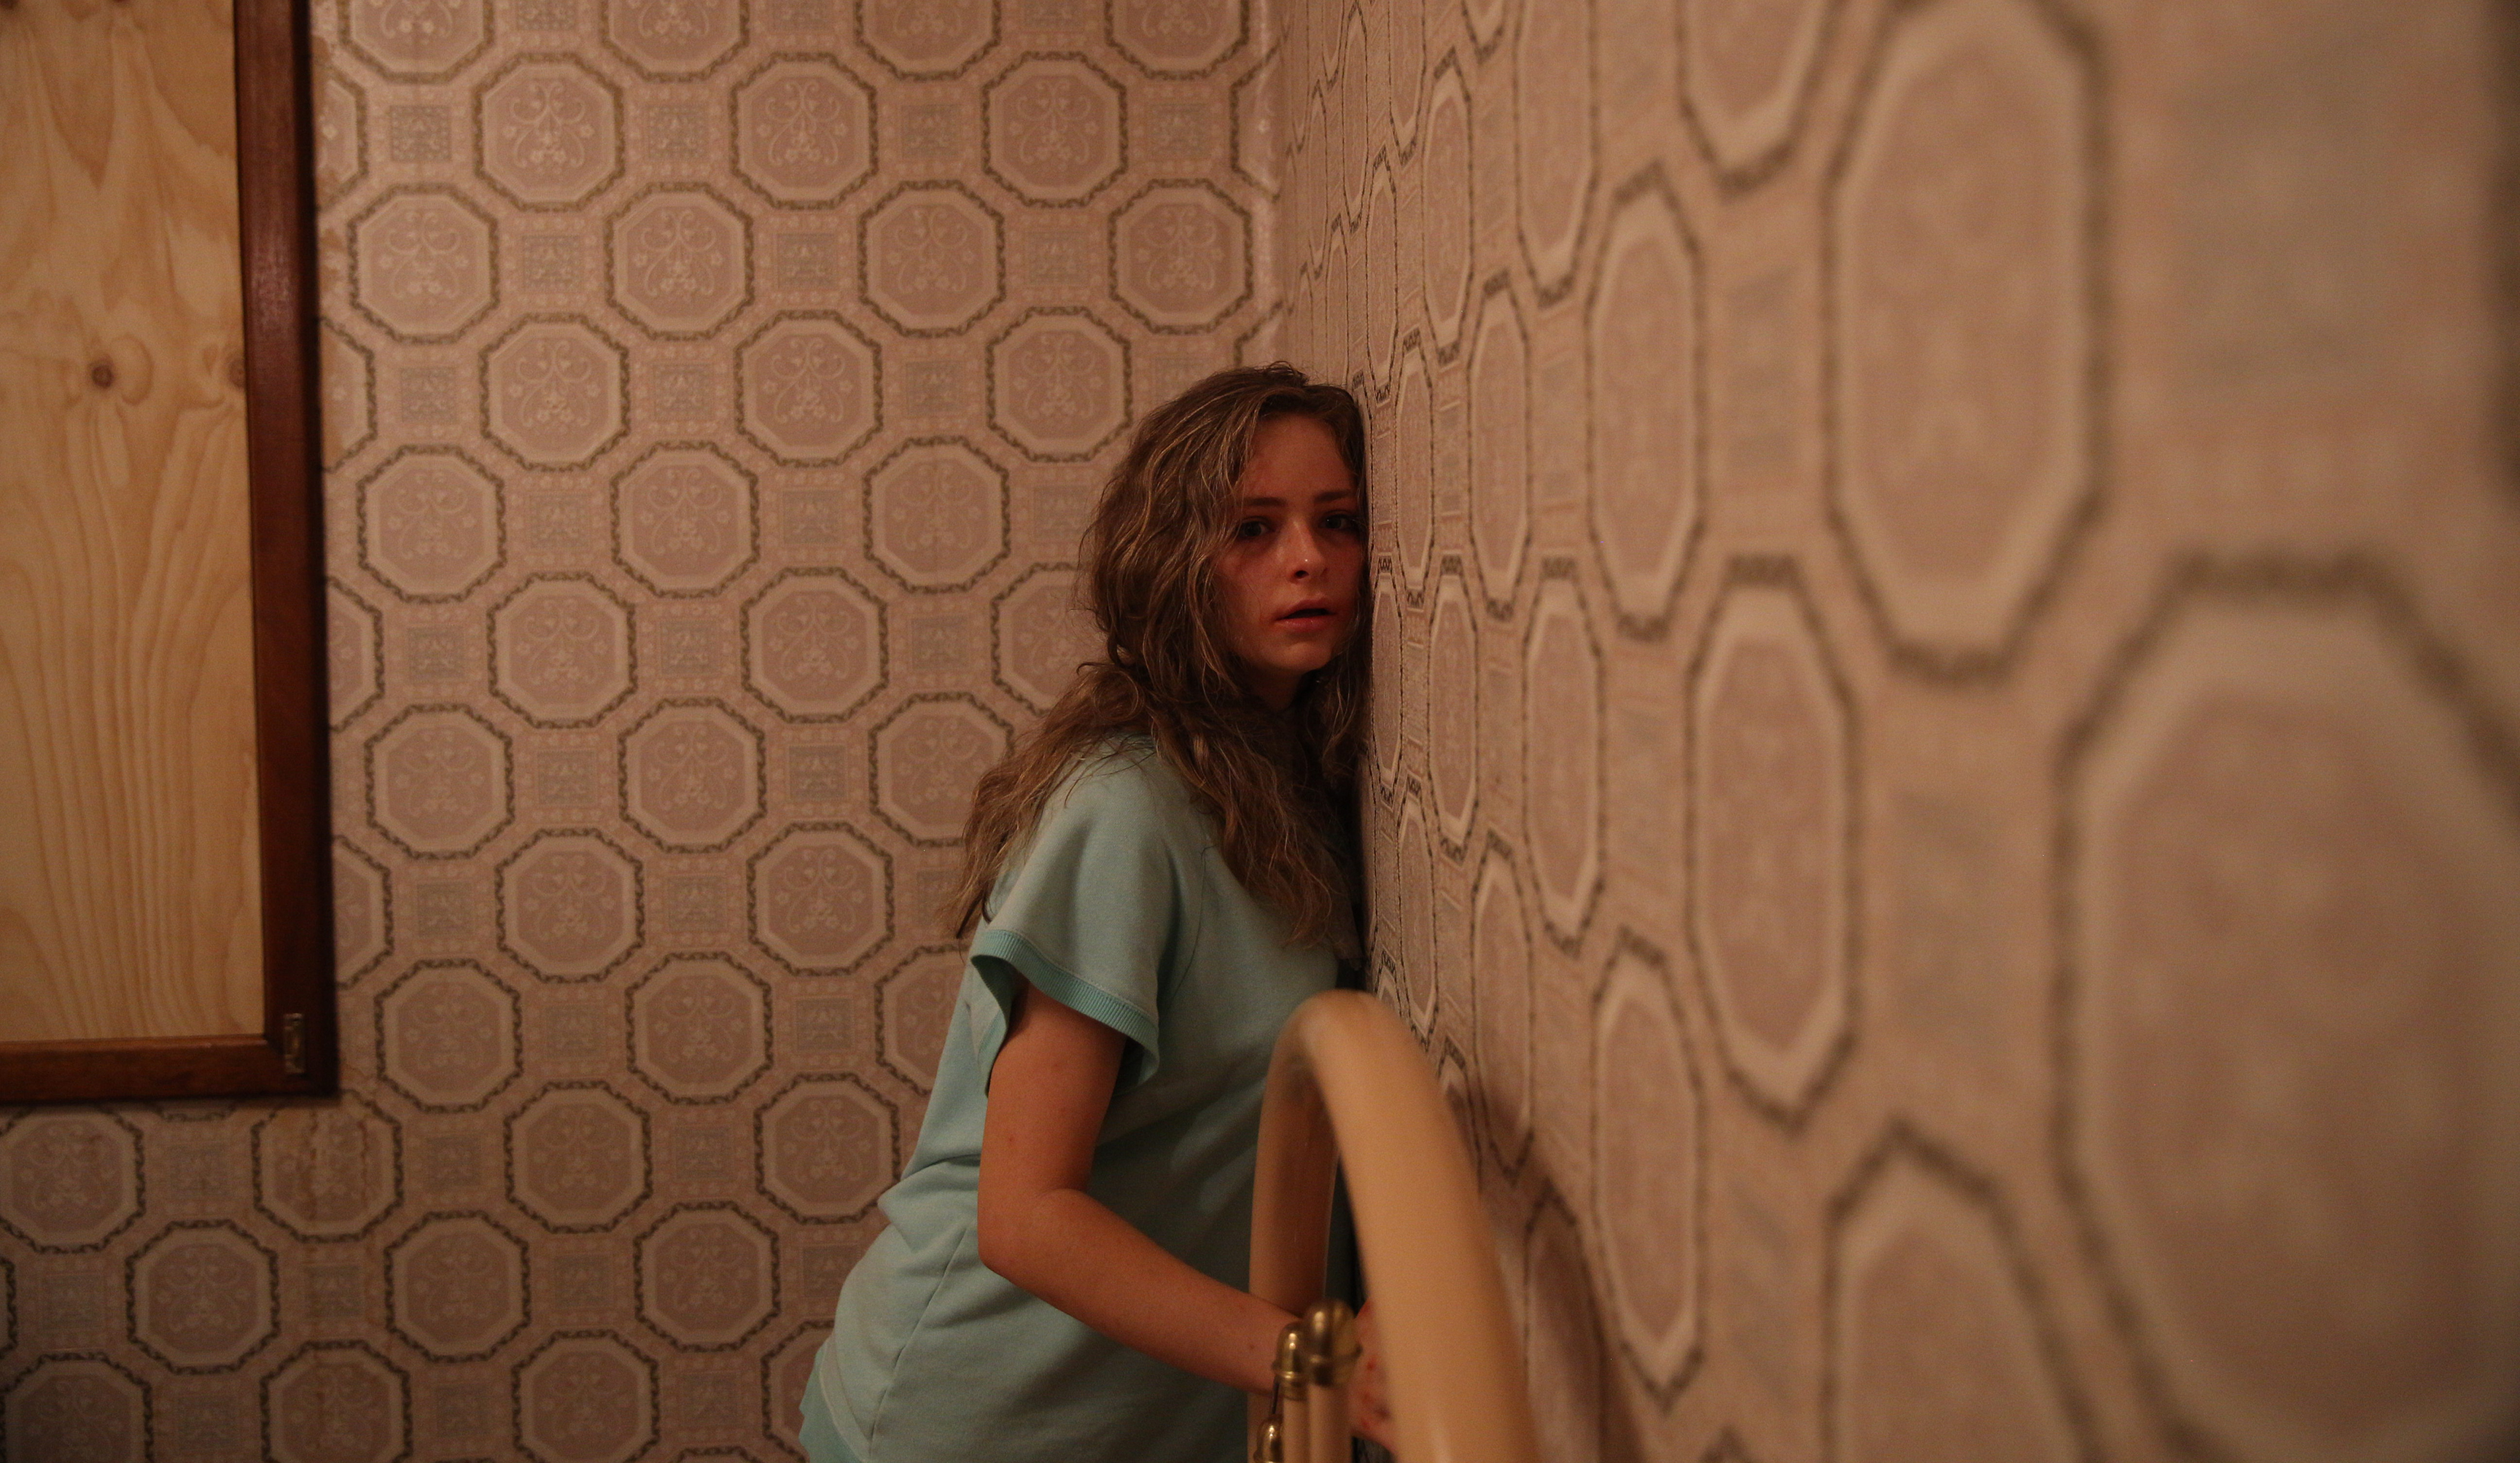 Hounds of love – Innocence perdue